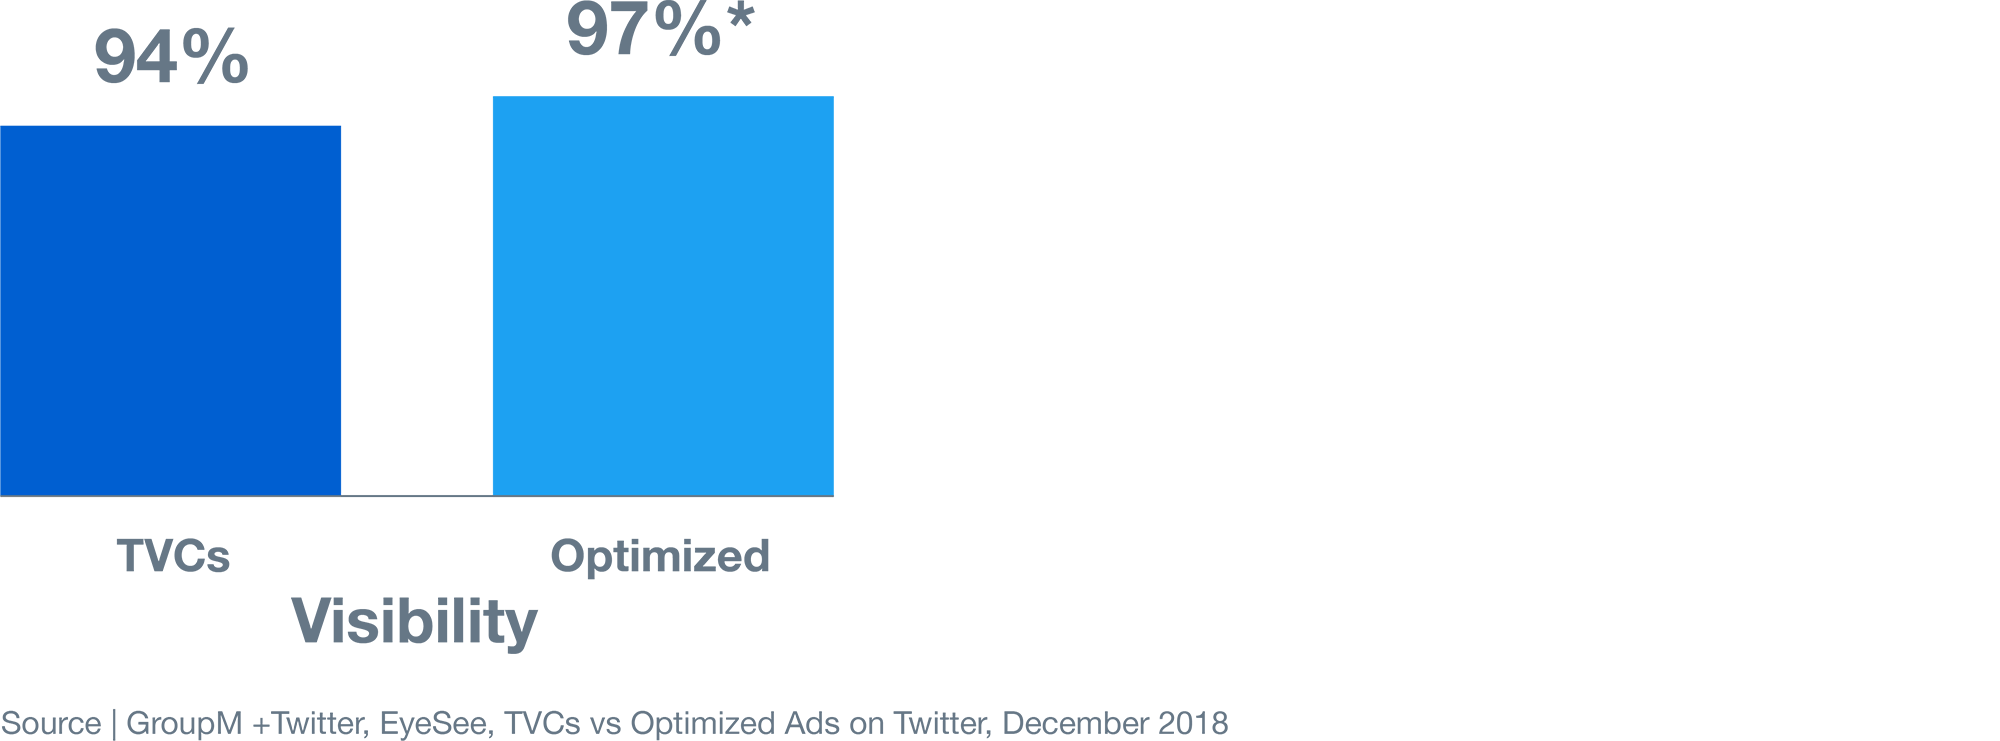 Why you should optimize your TV commercials for Twitter